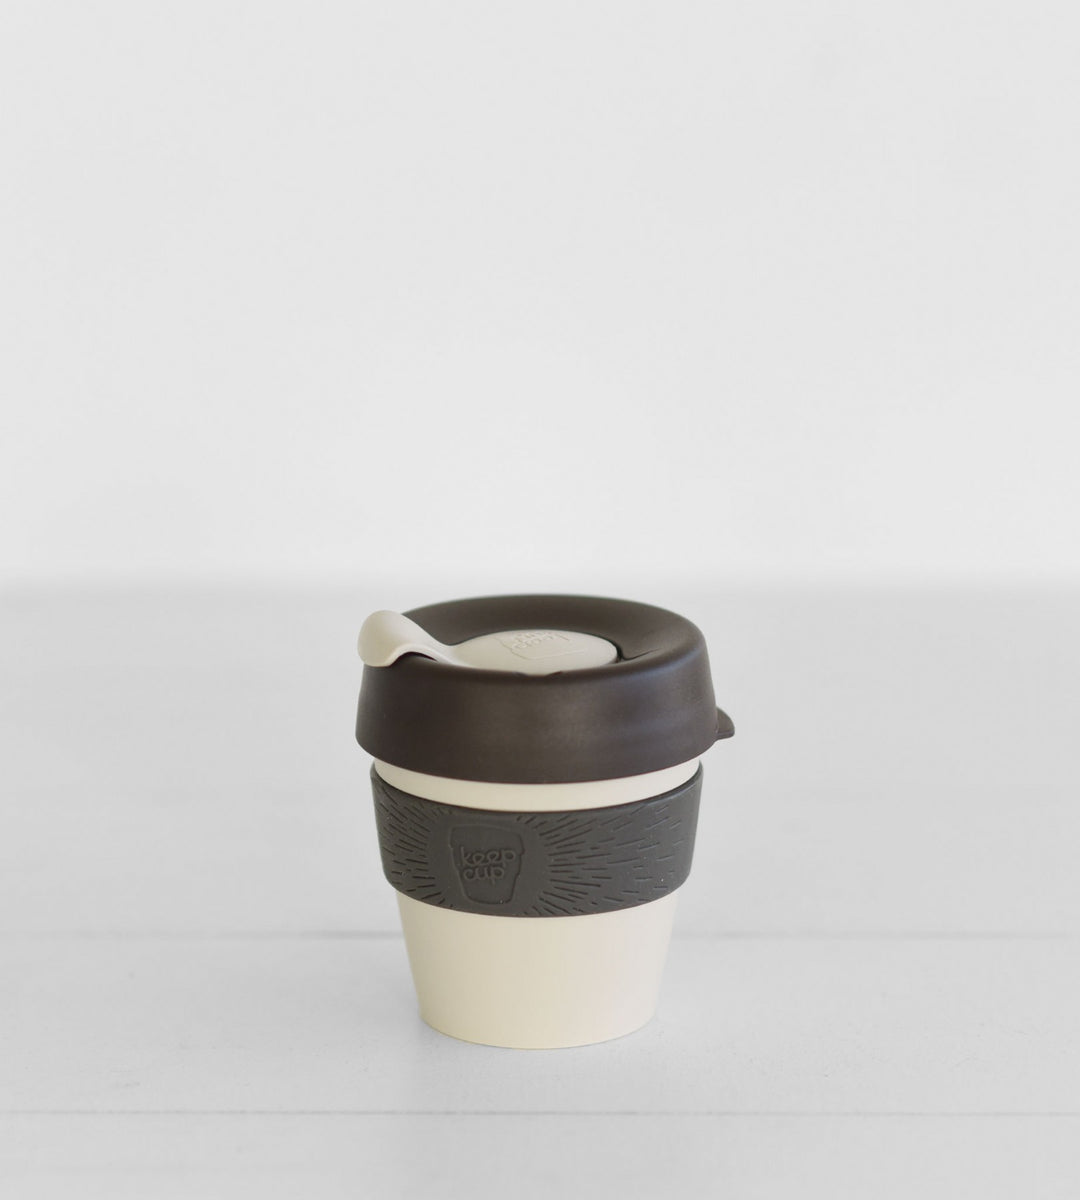 The KeepCup original 227ml size in Natural